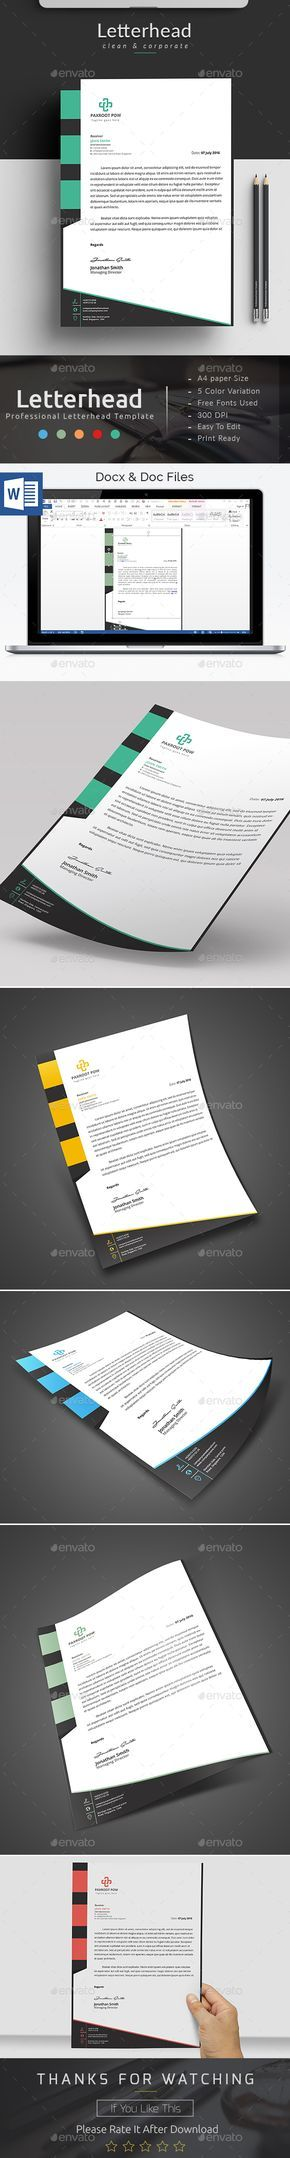 9 best Letterhead images on Pinterest Letterhead, Contact paper - ms word letterhead templates free download